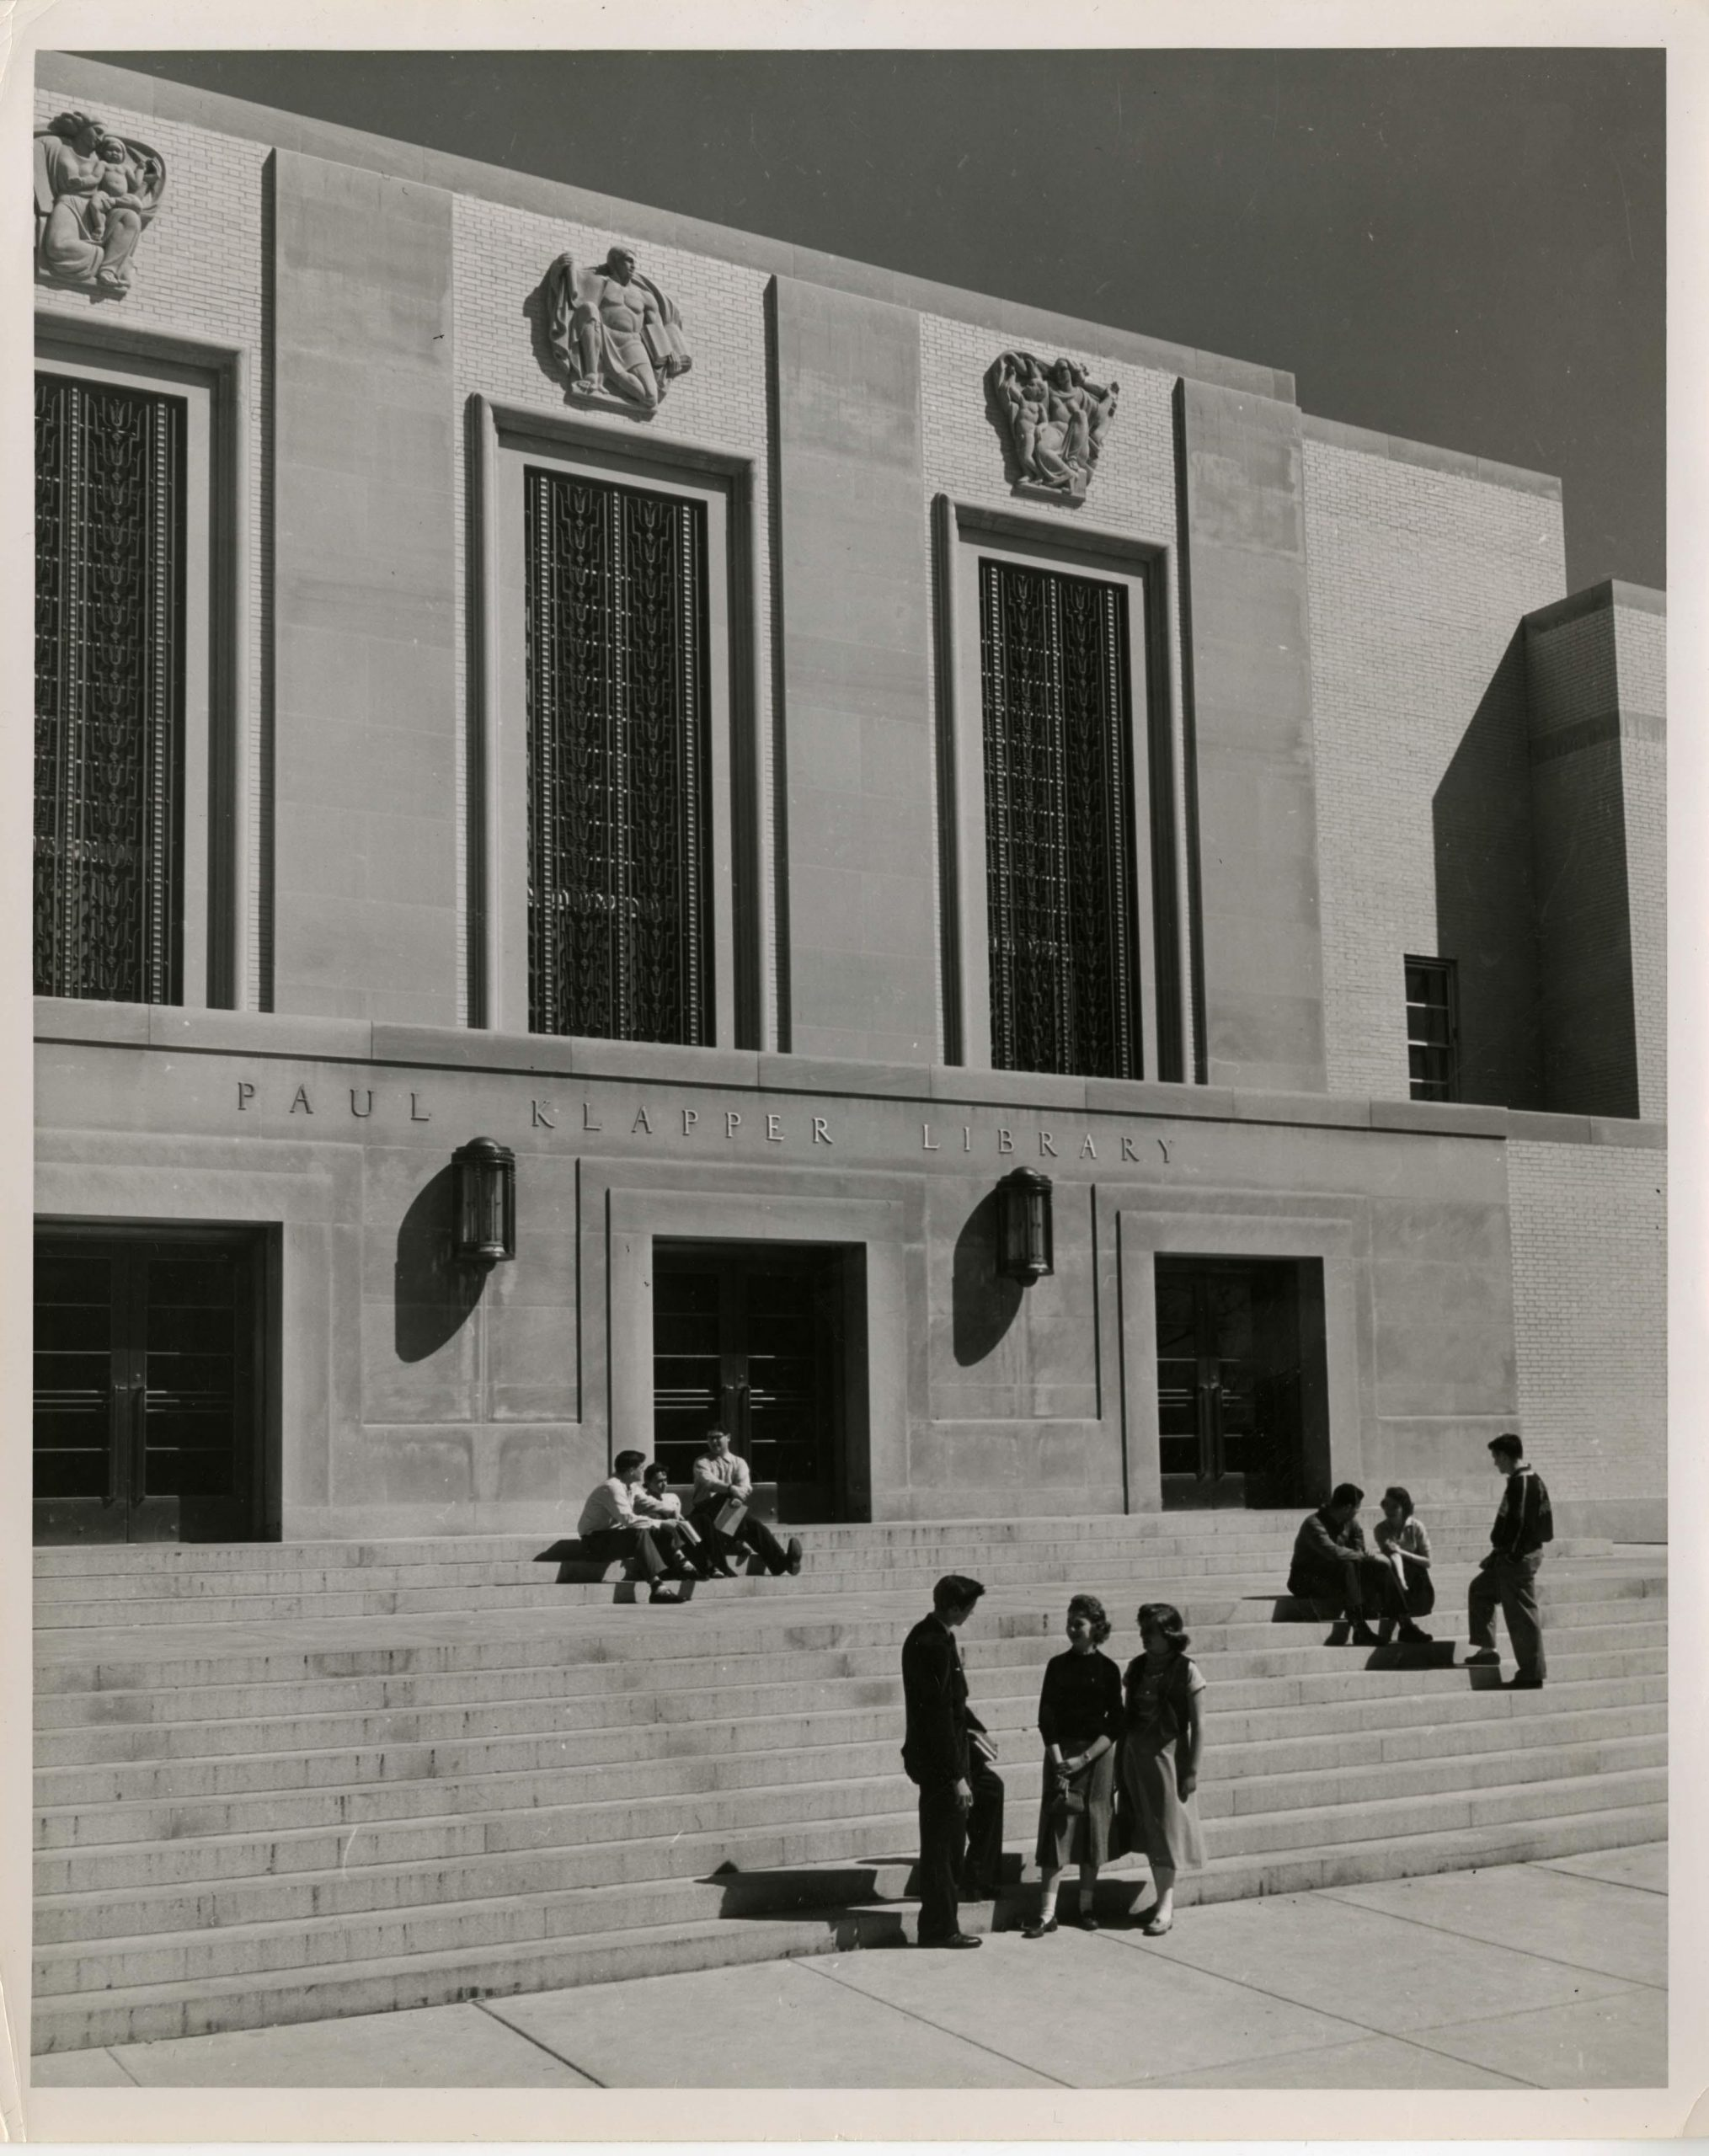 Photograph of the exterior of Paul Klapper Library